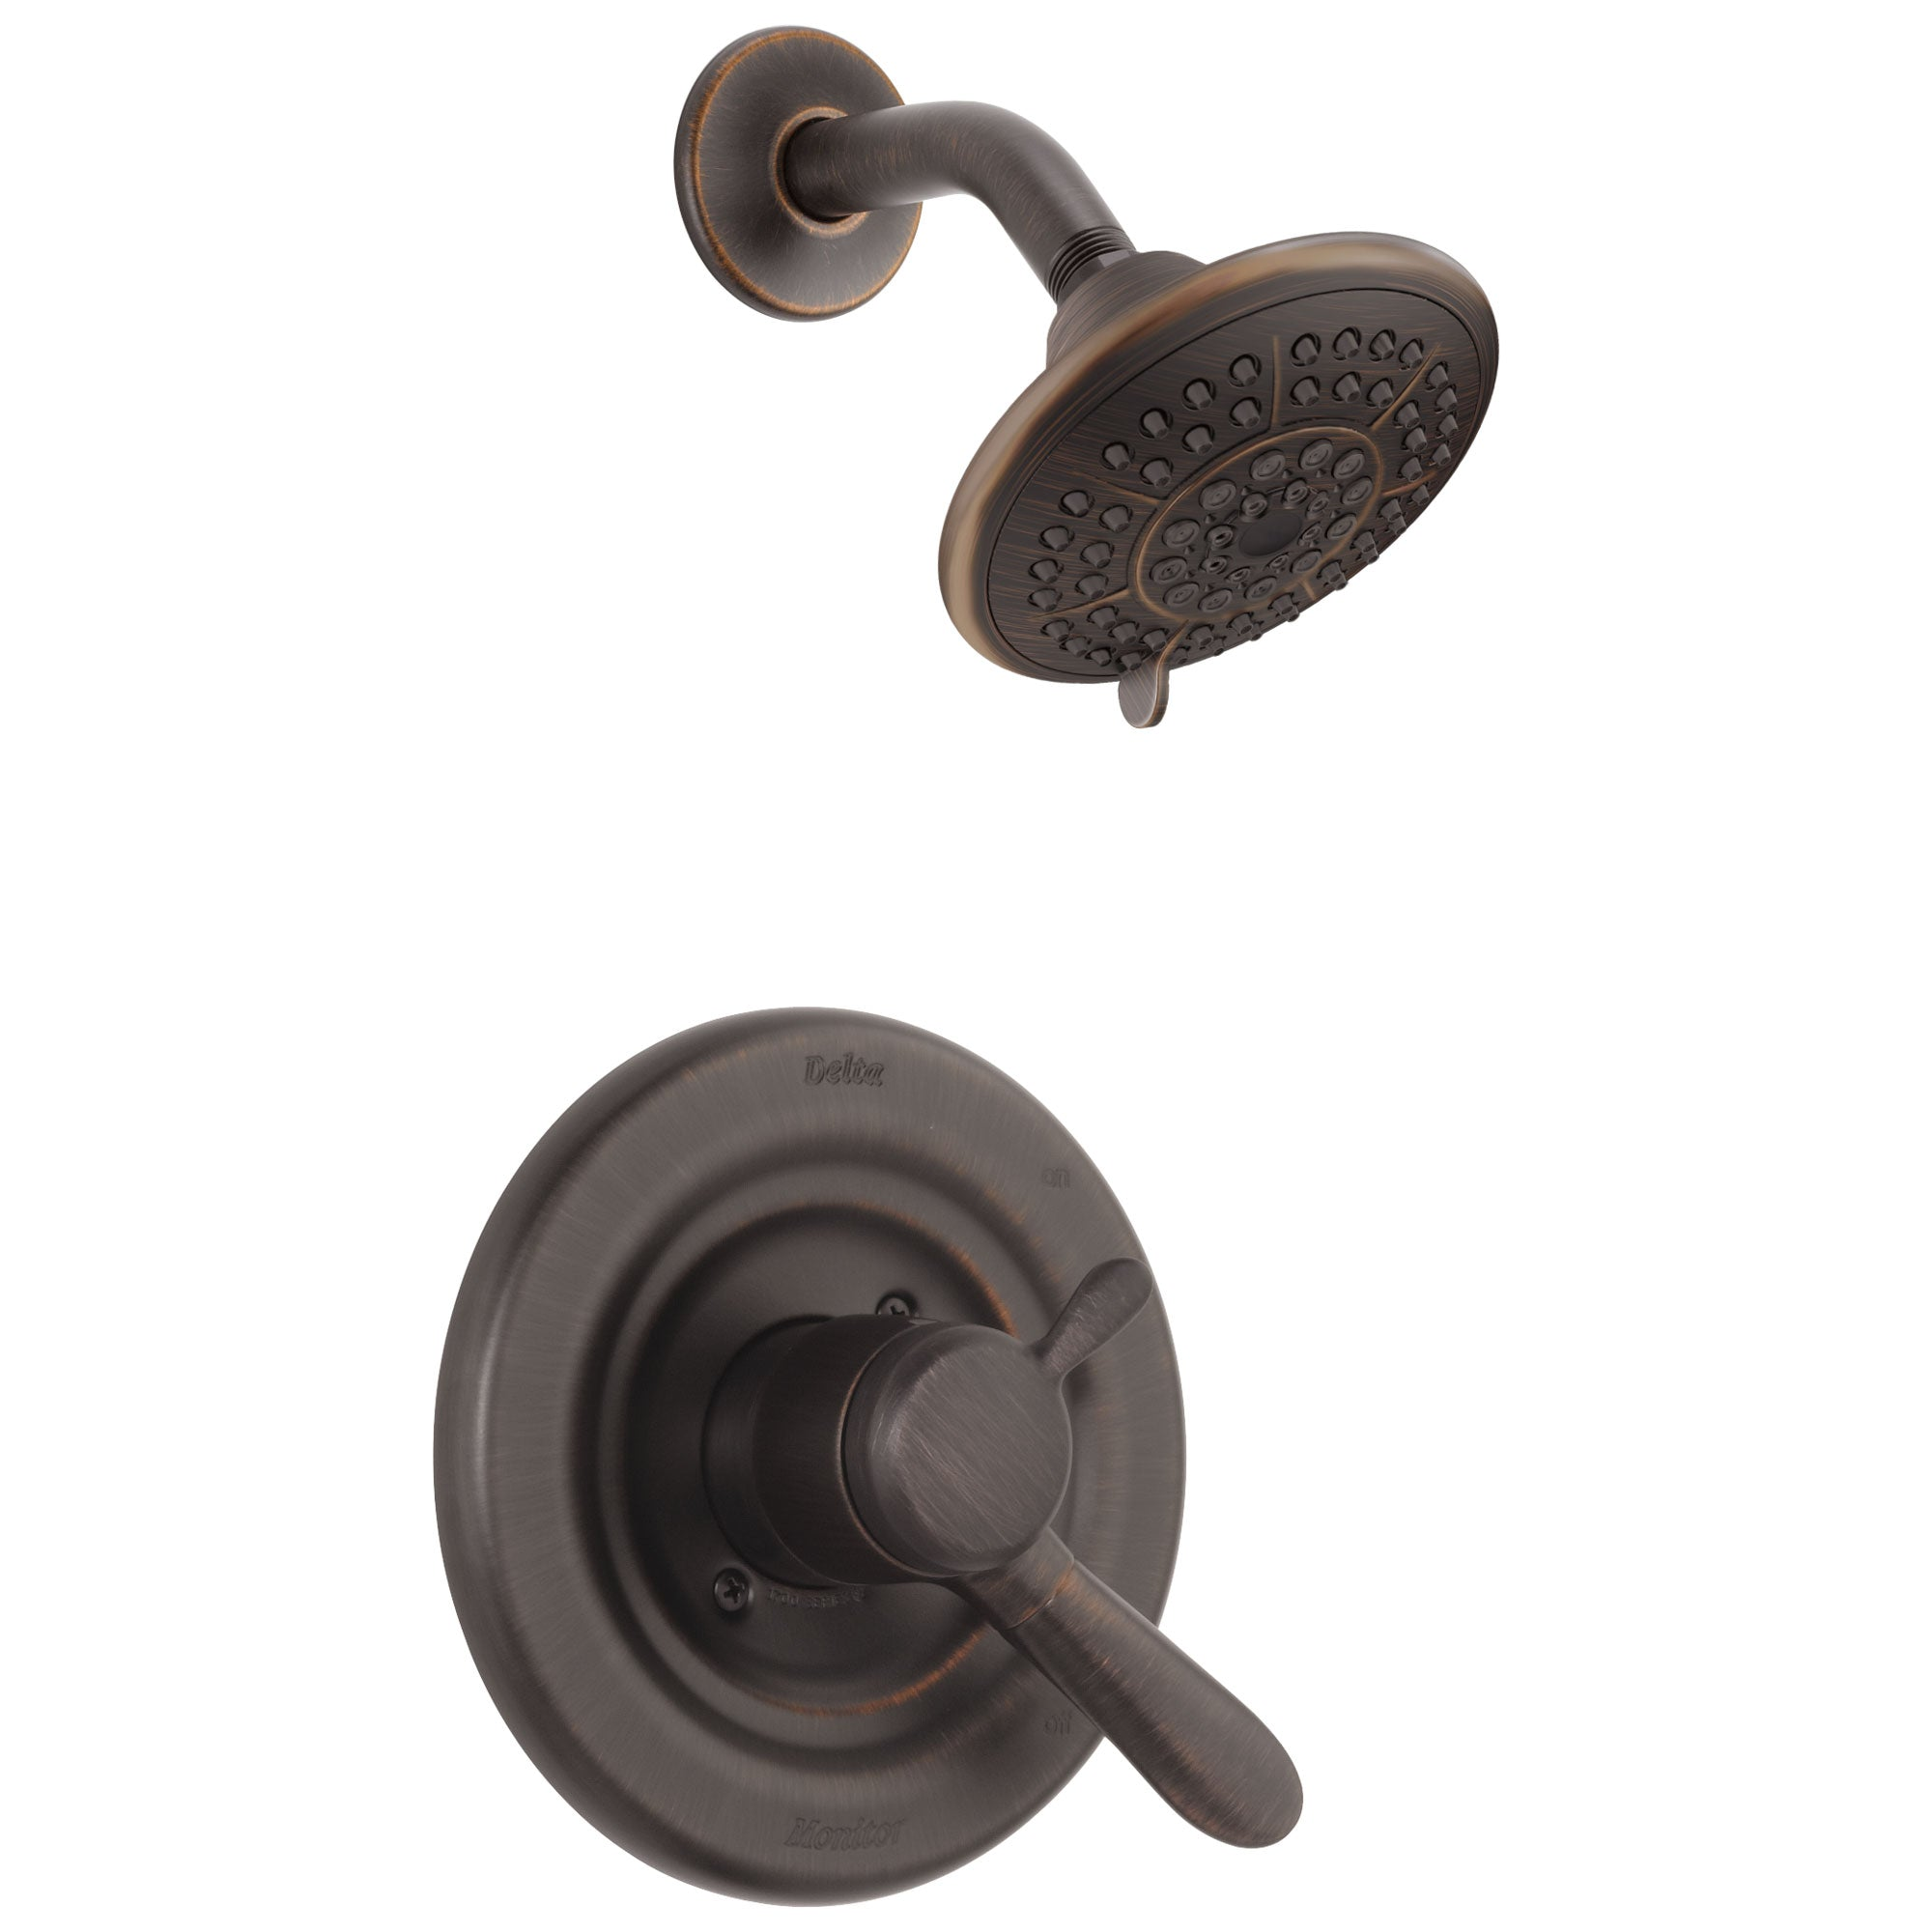 Delta Lahara Venetian Bronze Temp/Volume Control Shower Faucet Trim Kit 338257